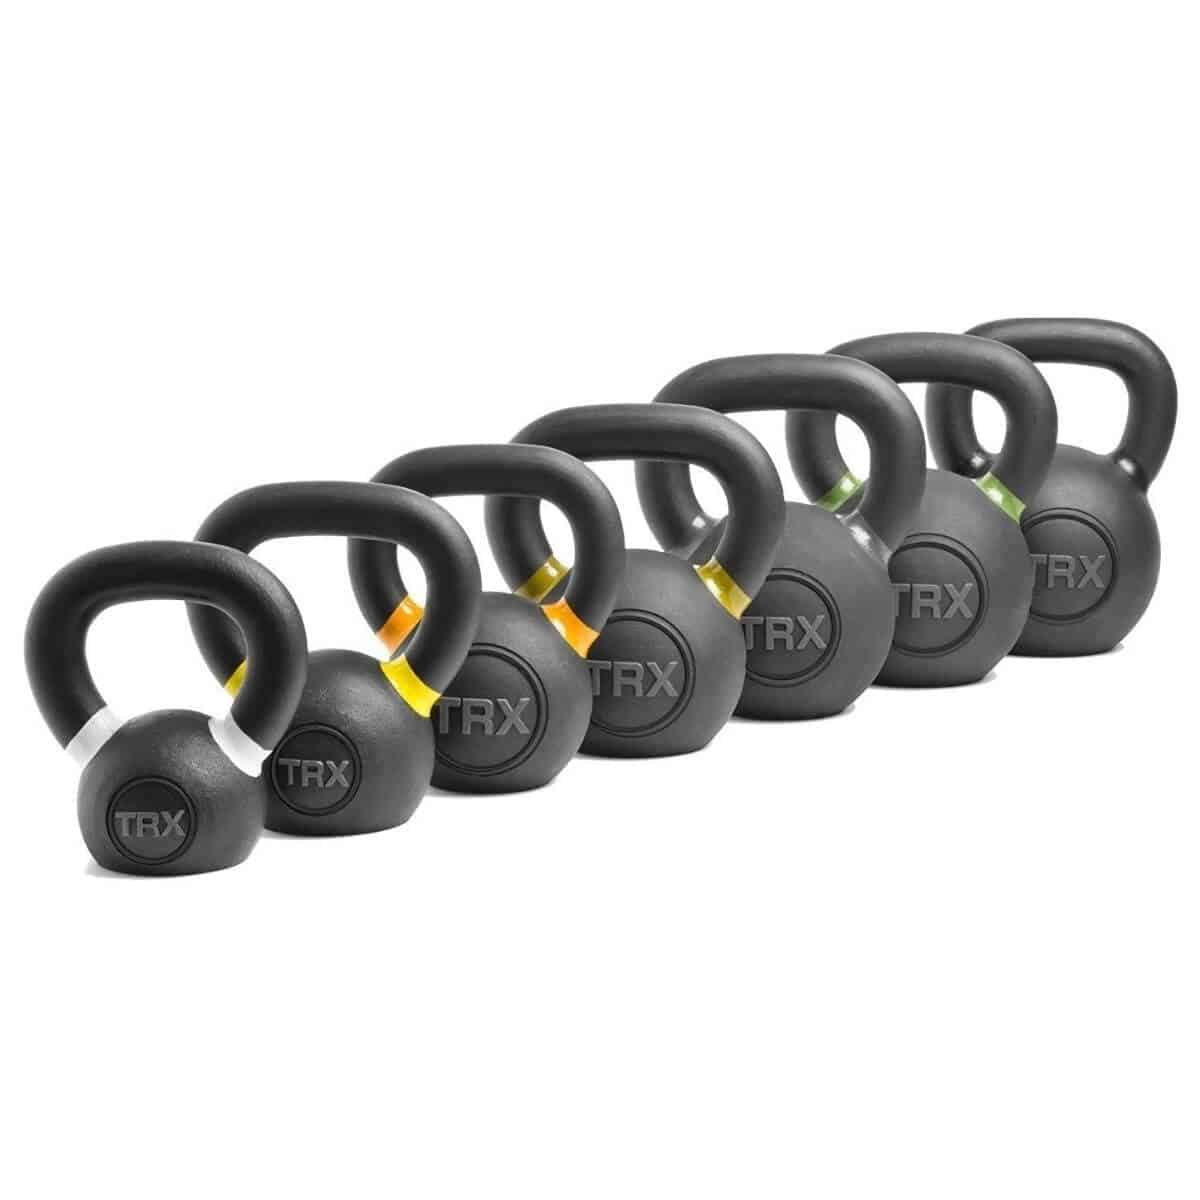 TRX kettlebells from smallest to largest.